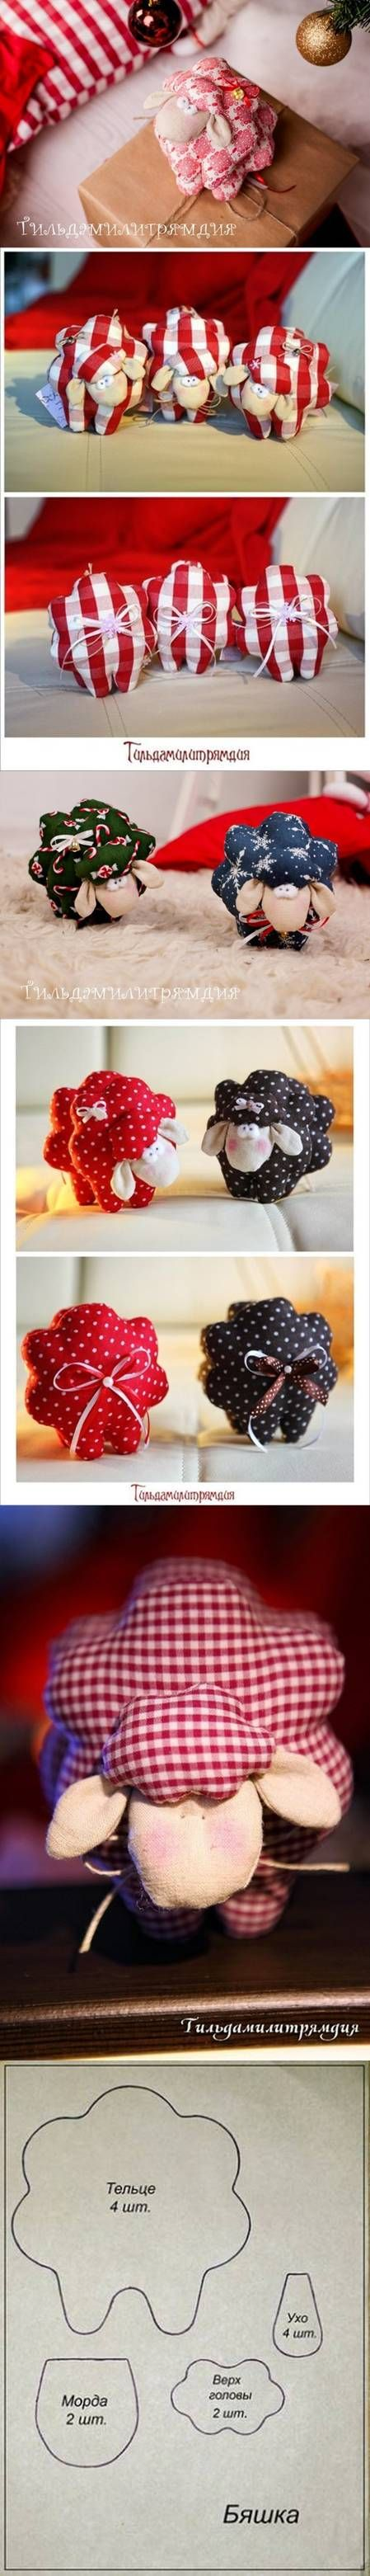 DIY Cute Fabric Lamb DIY Projects